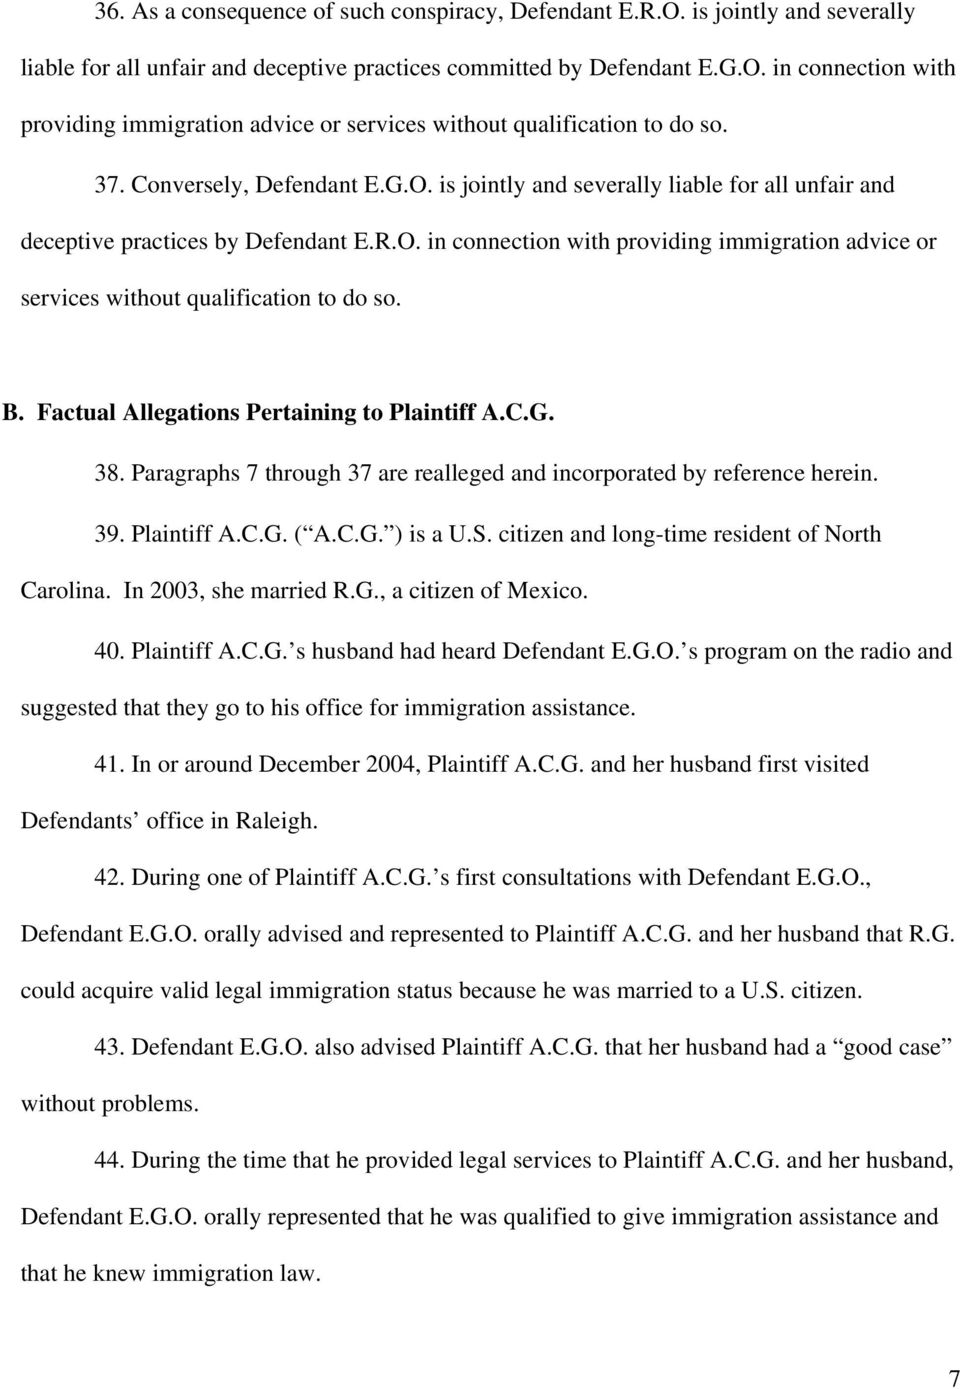 B. Factual Allegations Pertaining to Plaintiff A.C.G. 38. Paragraphs 7 through 37 are realleged and incorporated by reference herein. 39. Plaintiff A.C.G. ( A.C.G. ) is a U.S.